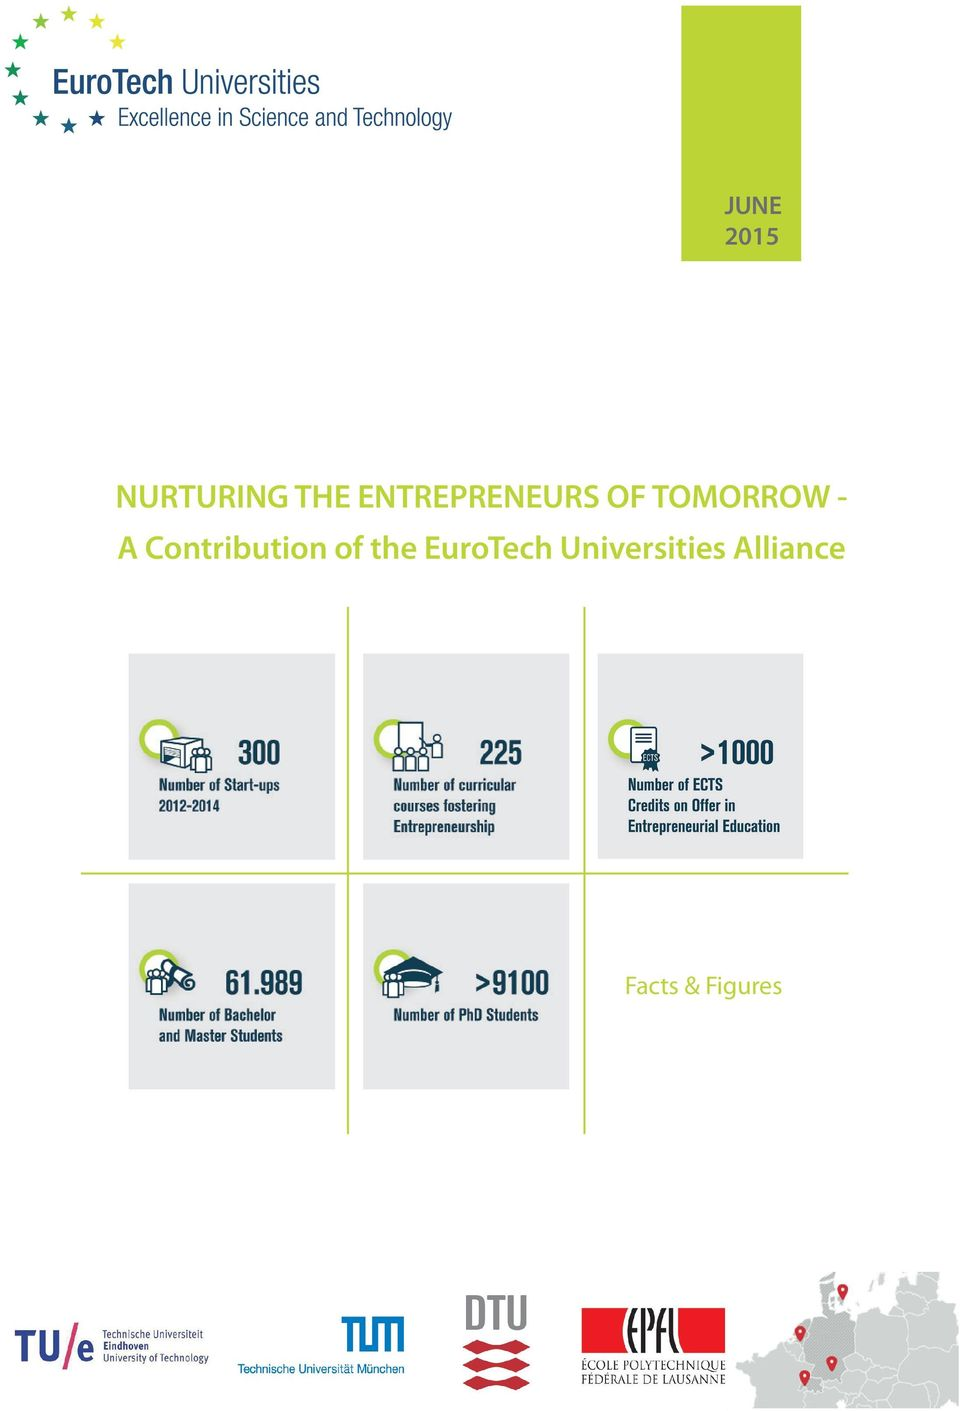 Contribution of the EuroTech